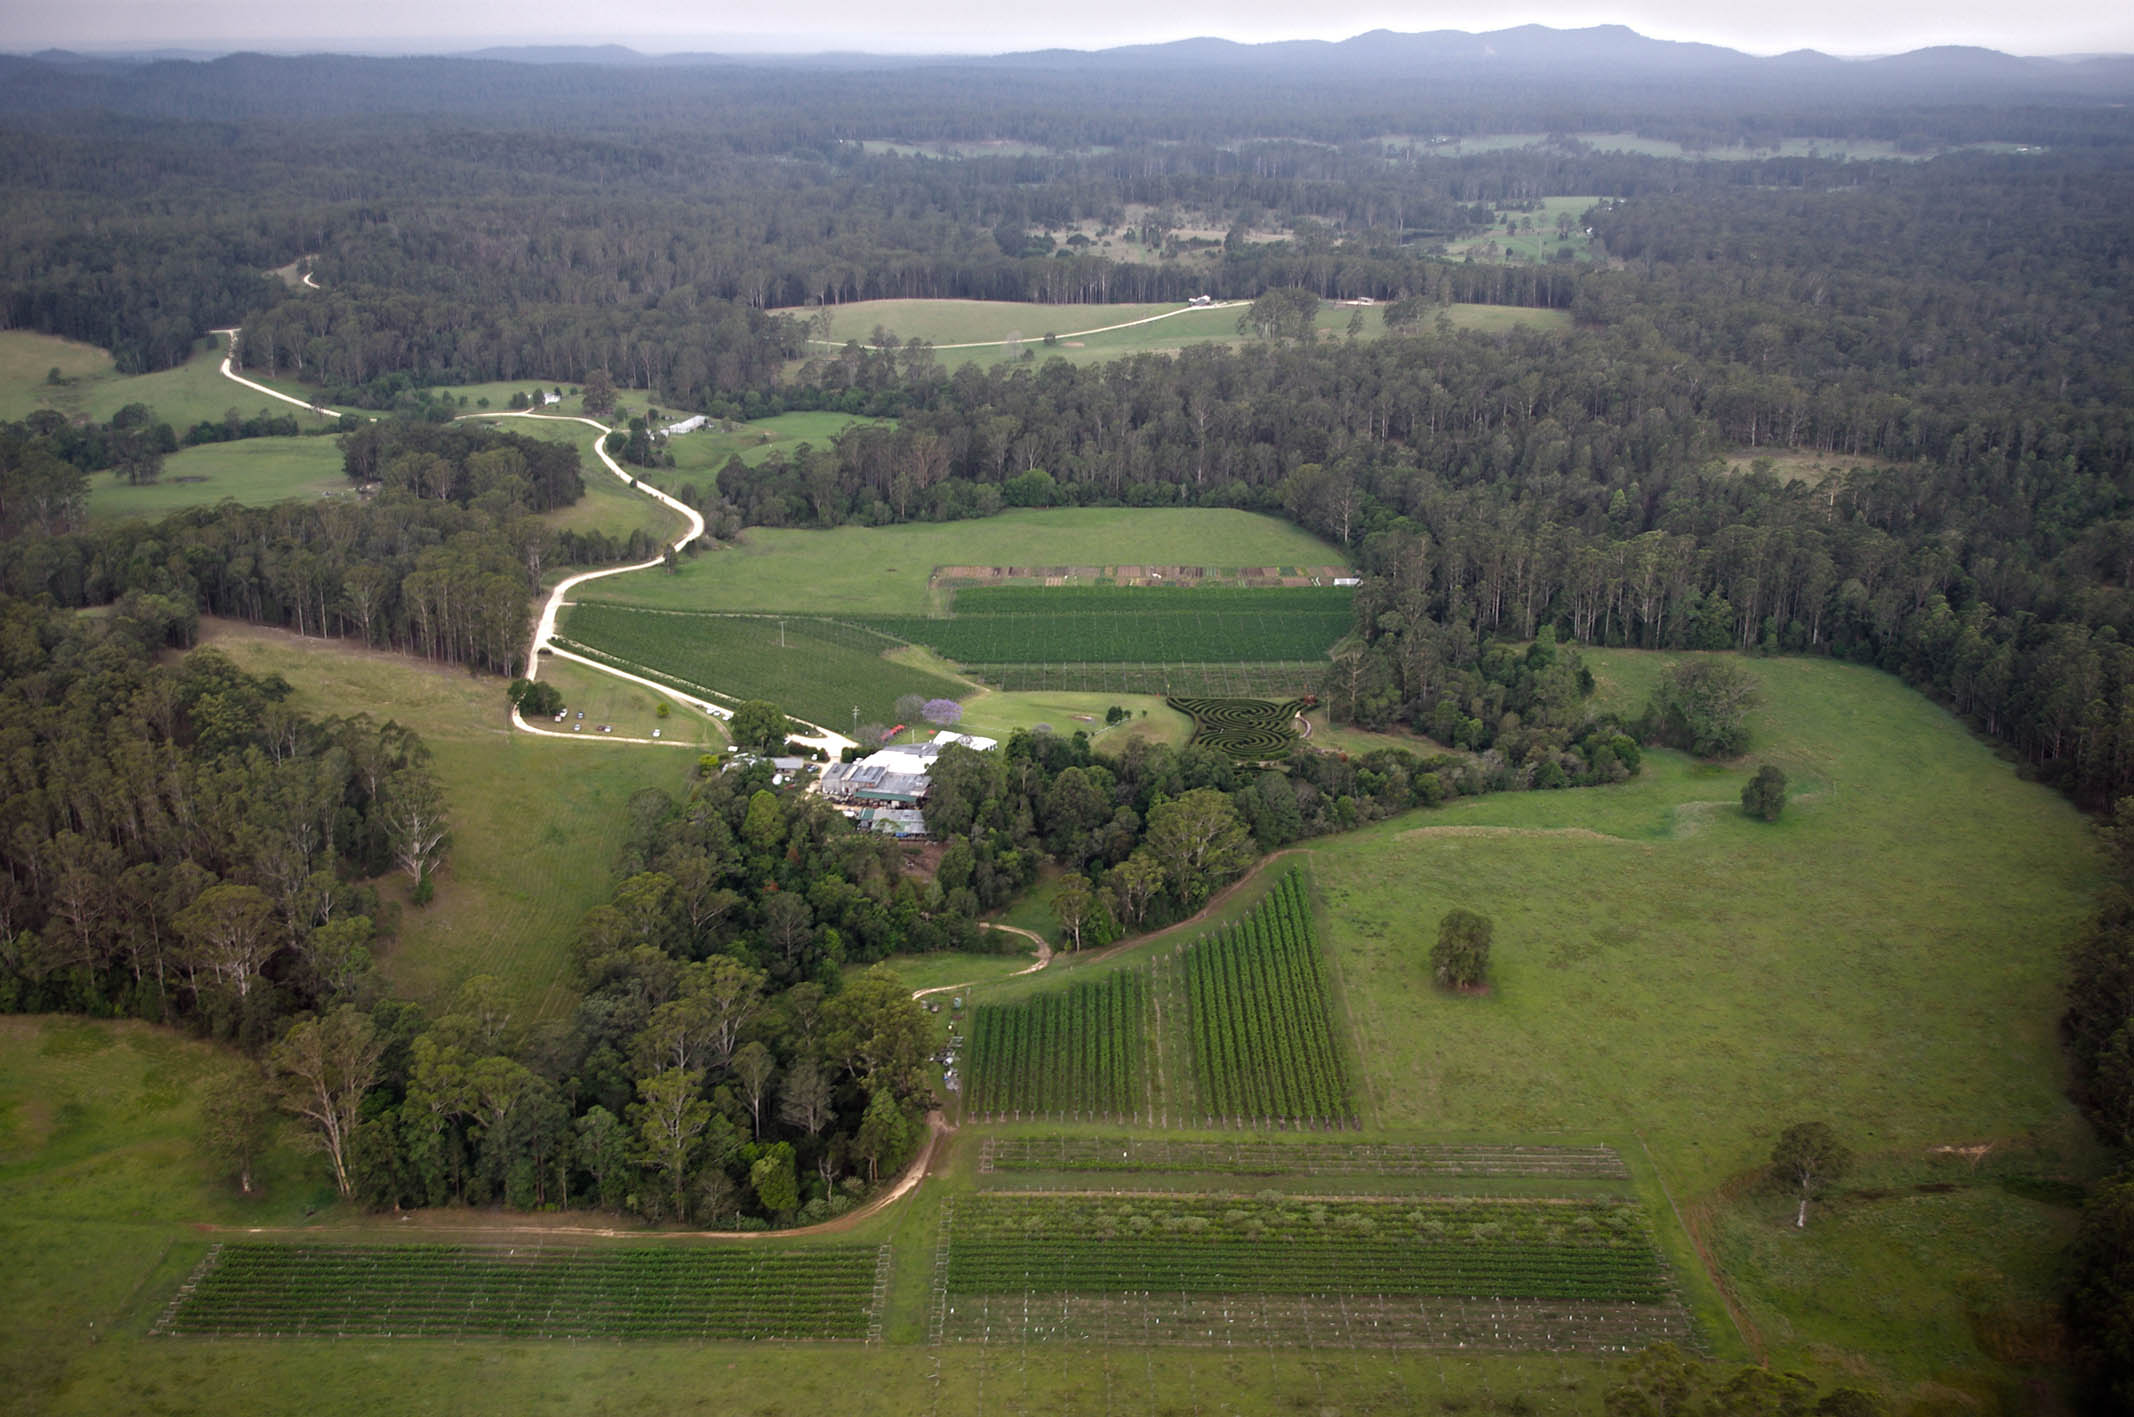 Aerial view of Bago Farm